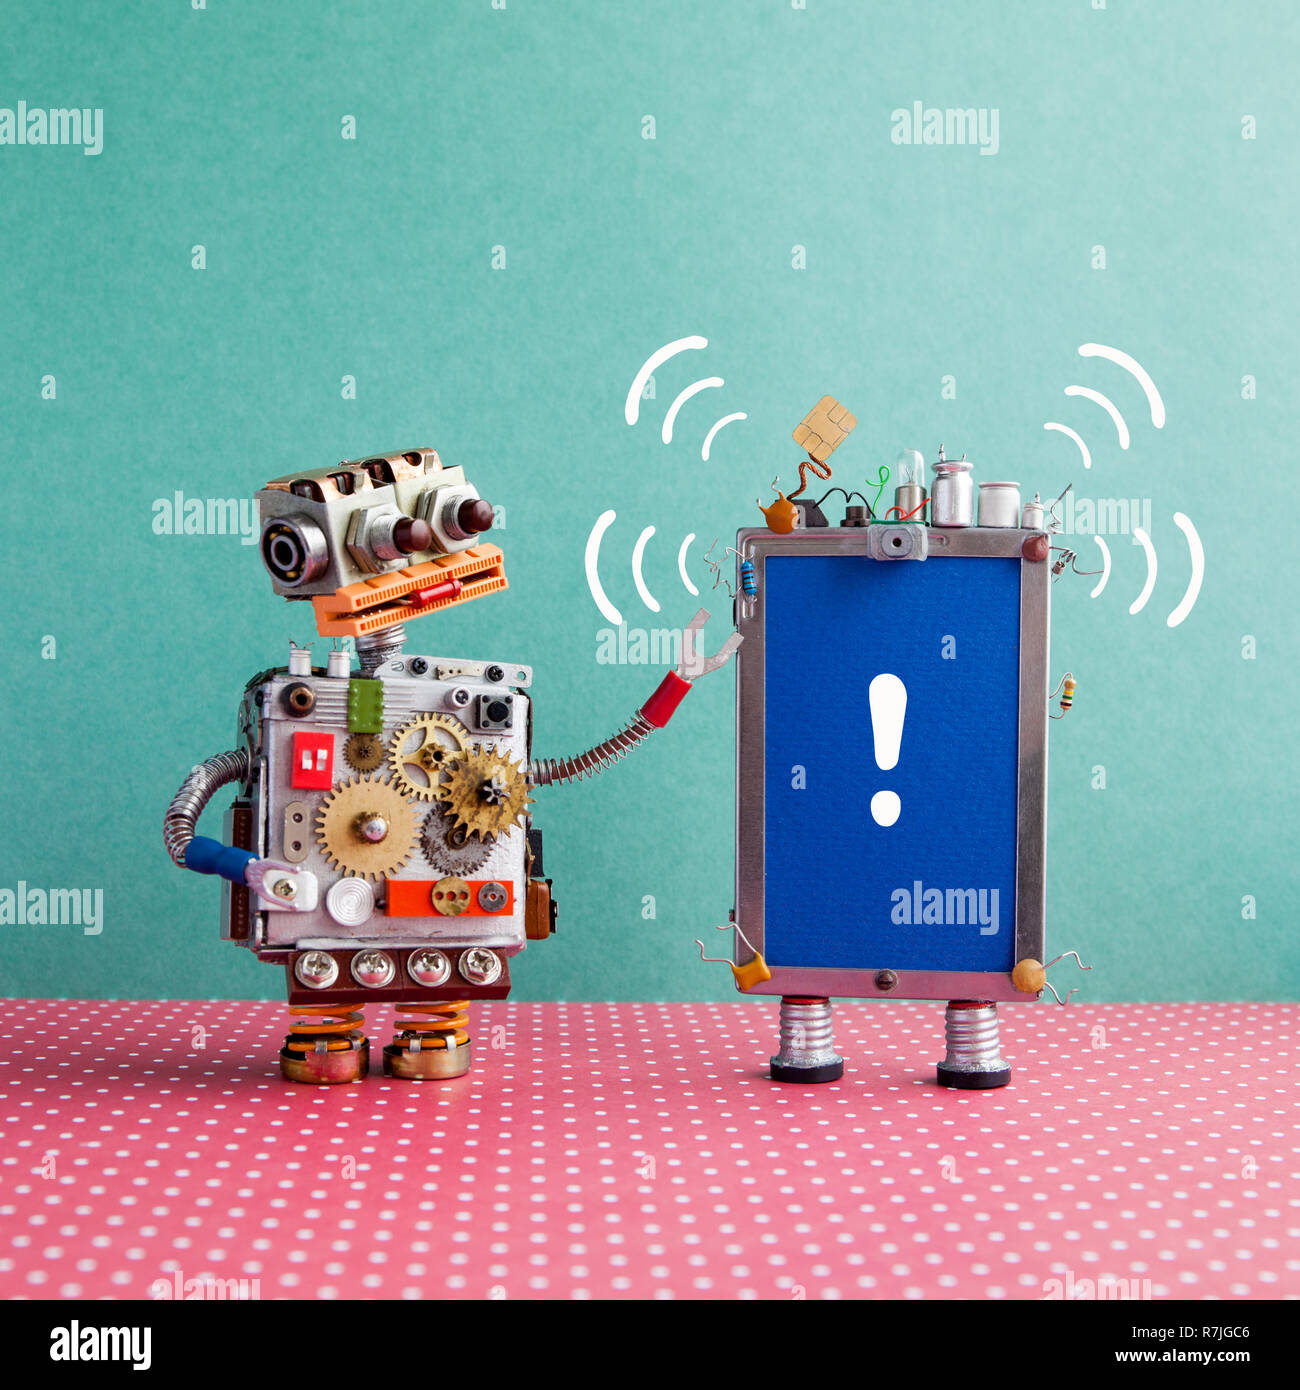 Robot looks at a smartphone with beep sound and exclamation mark on blue screen. Attention and help service concept. Blue red background - Stock Image